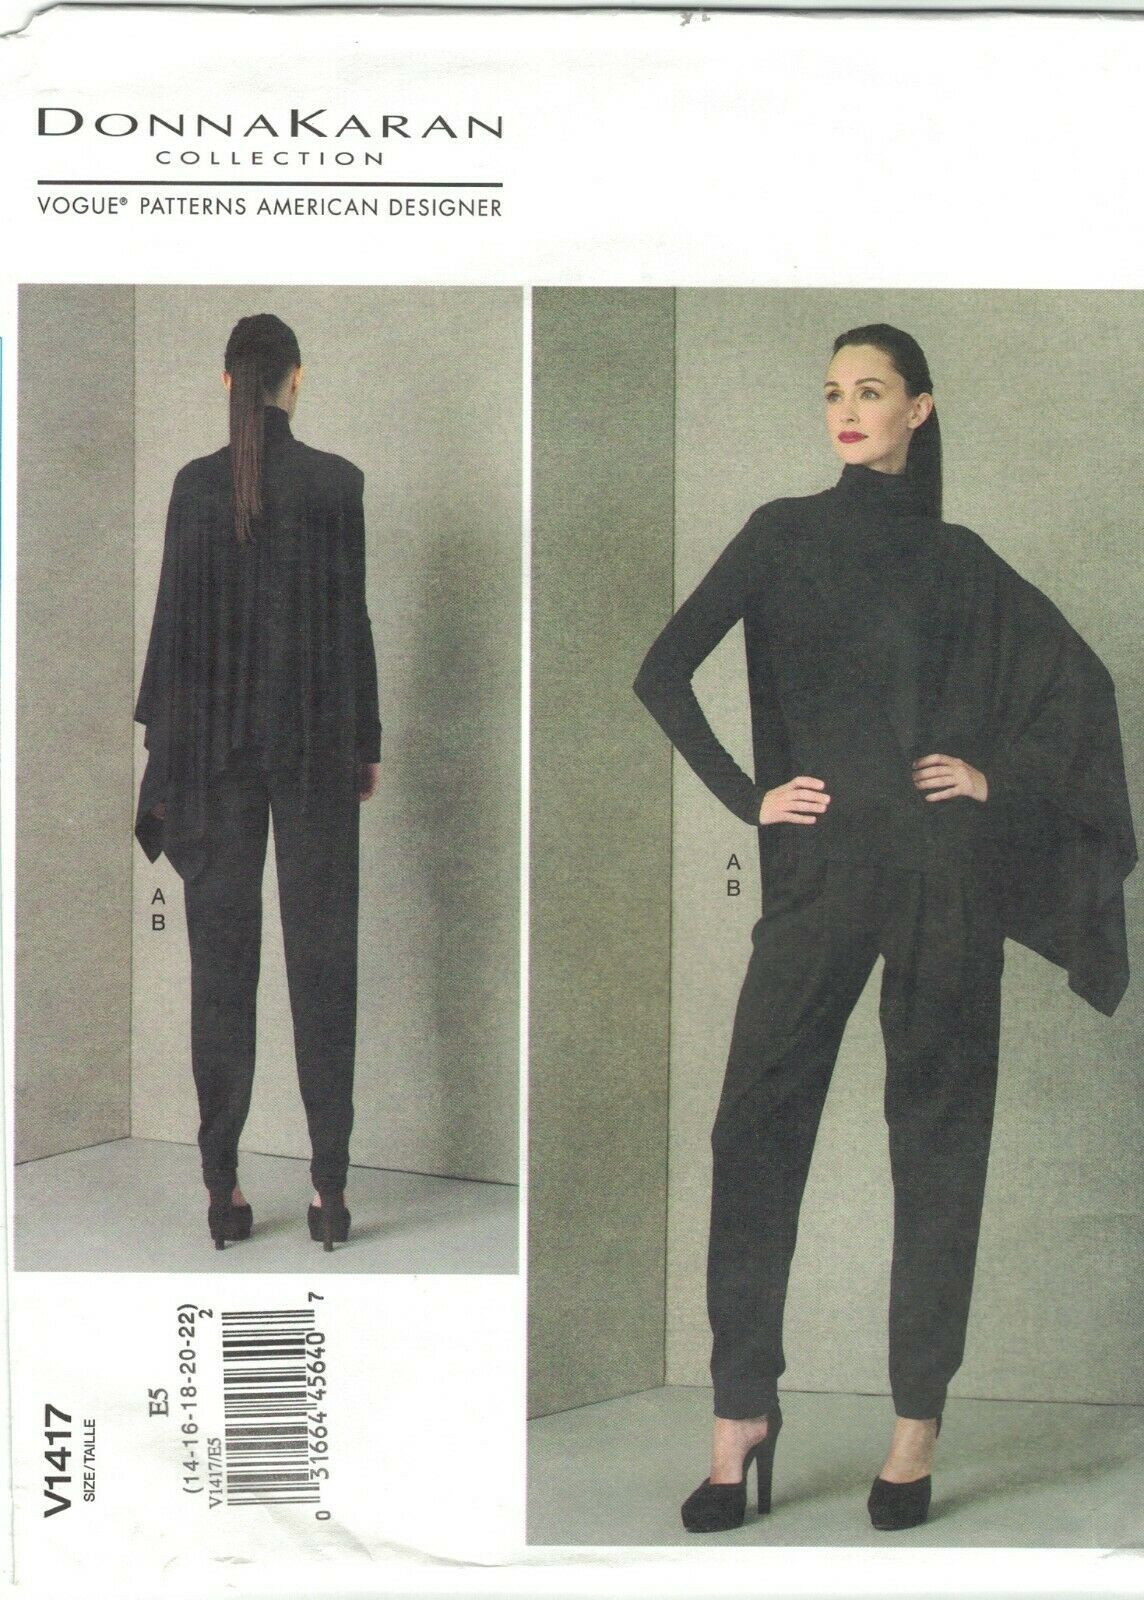 Primary image for Vogue 1417 Donna Karan Half Cape Top and Pants Pattern Size 14 16 18 20 22 Uncut